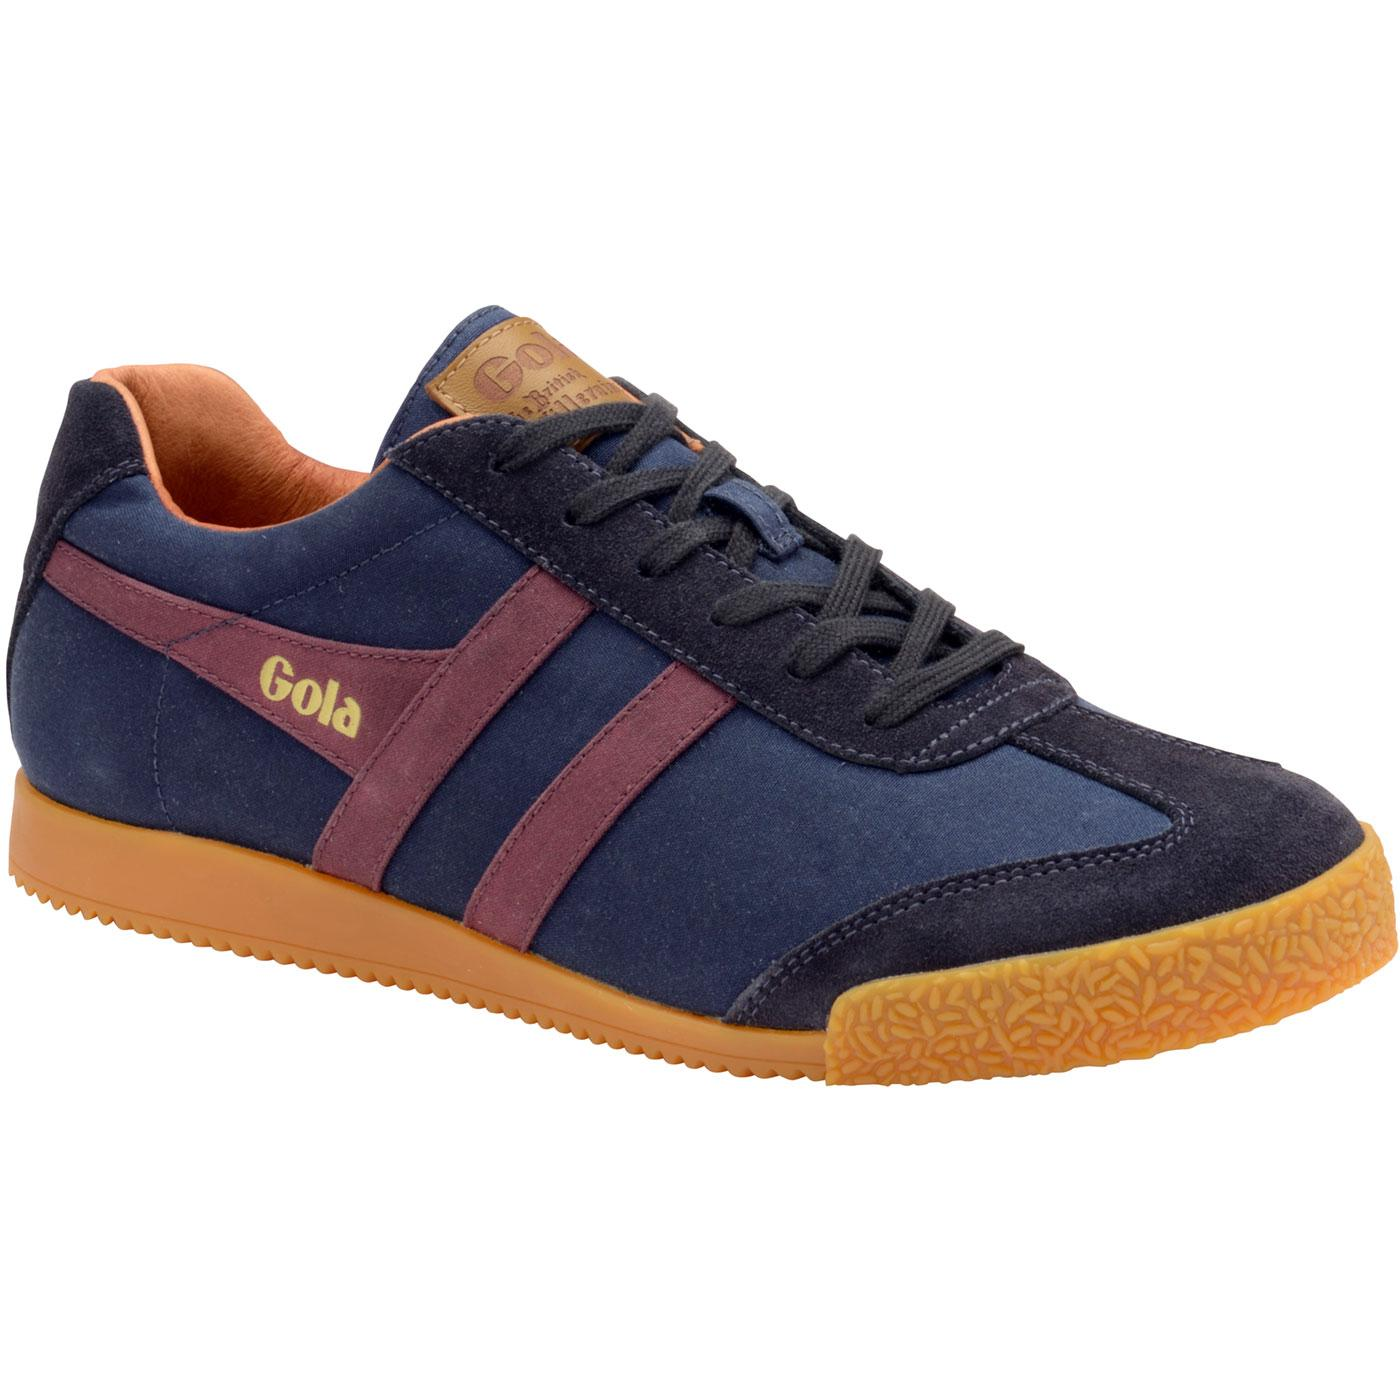 Harrier Millerain GOLA Men's Retro Trainers (Navy)